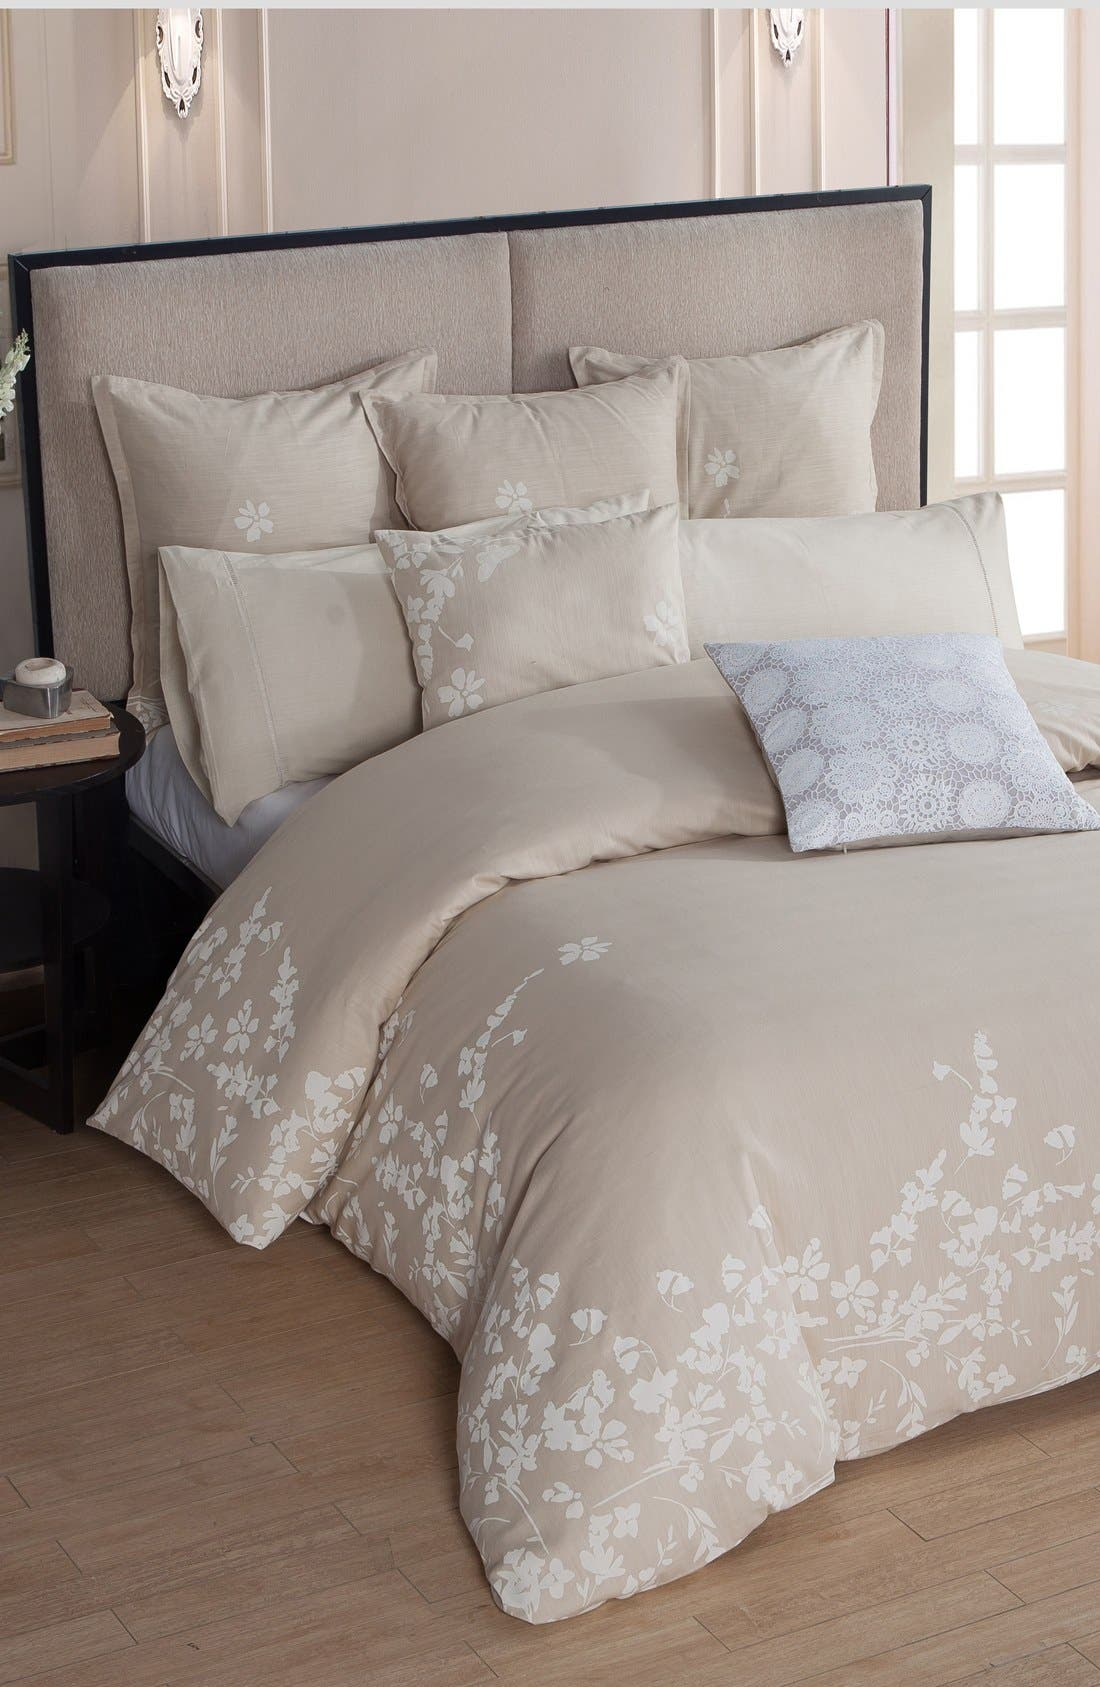 Laramie Duvet Cover & Sham Set,                             Main thumbnail 1, color,                             BEIGE